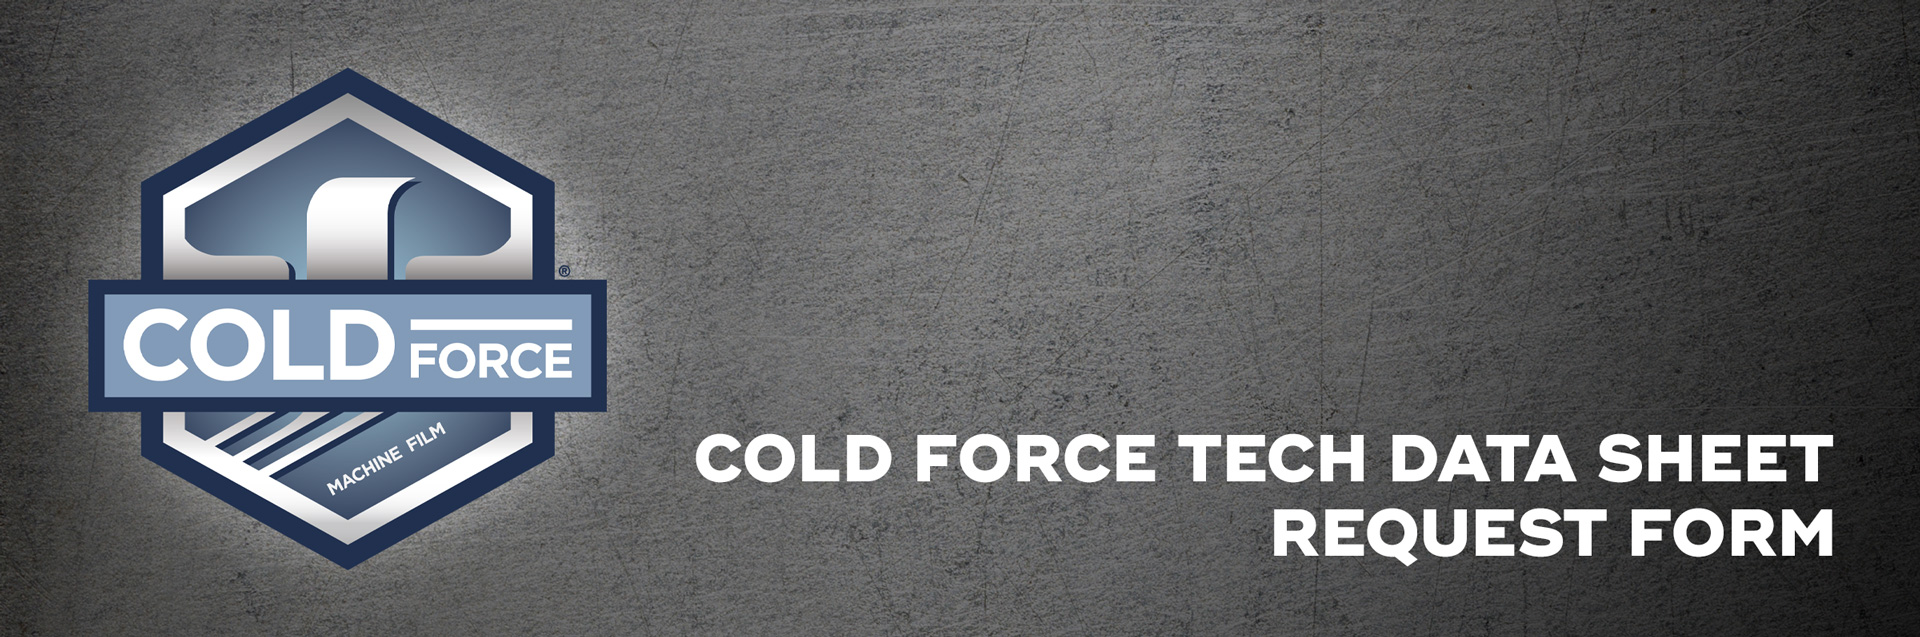 Cold-Force-Tech-Data-Sheet-Request-Form